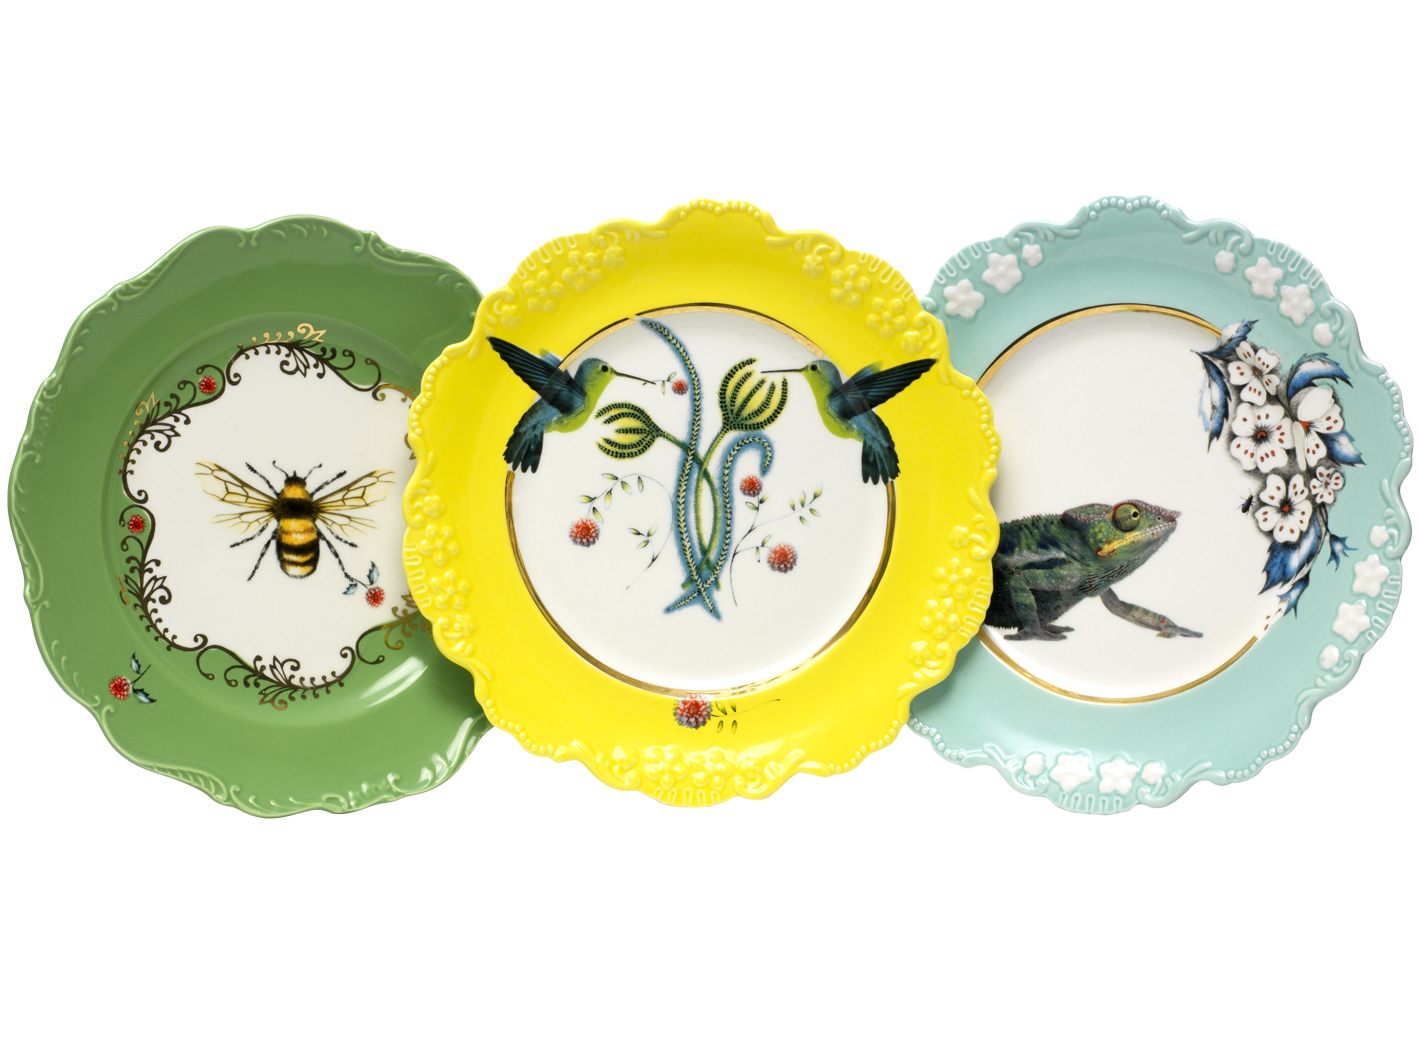 Quirky colourful plates from. Dish clipart small plate